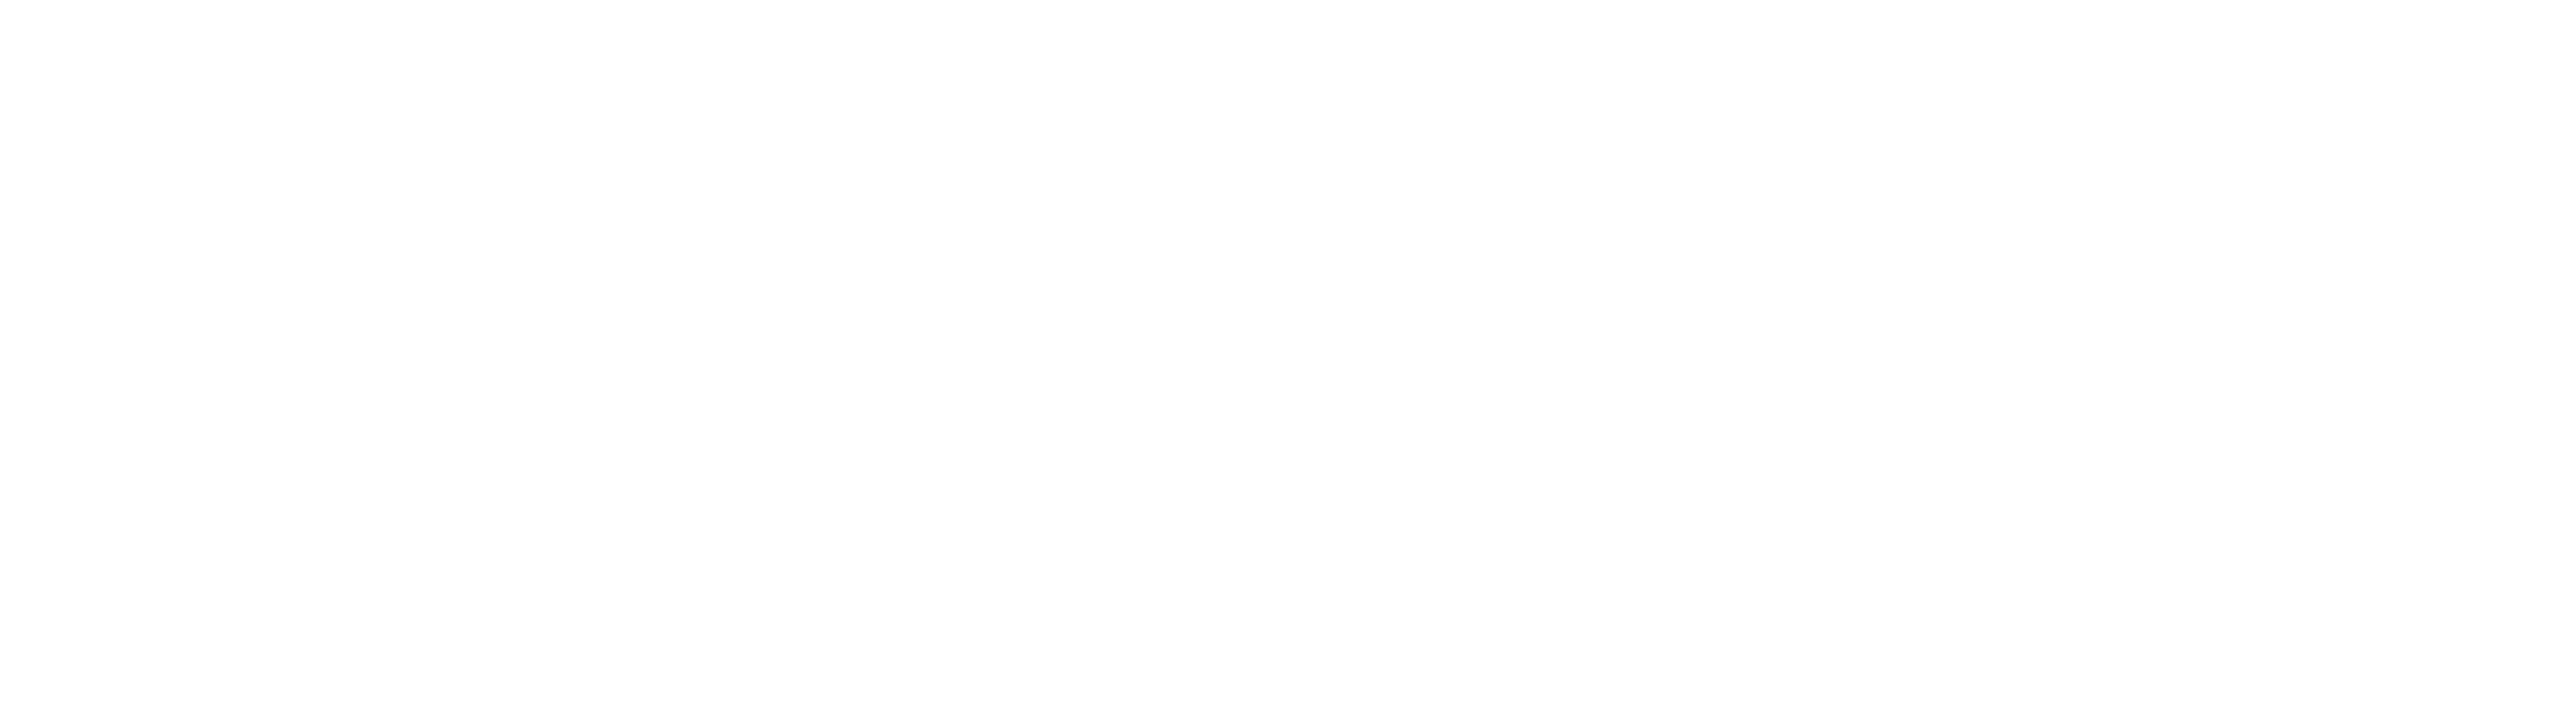 Hentges Tree Service